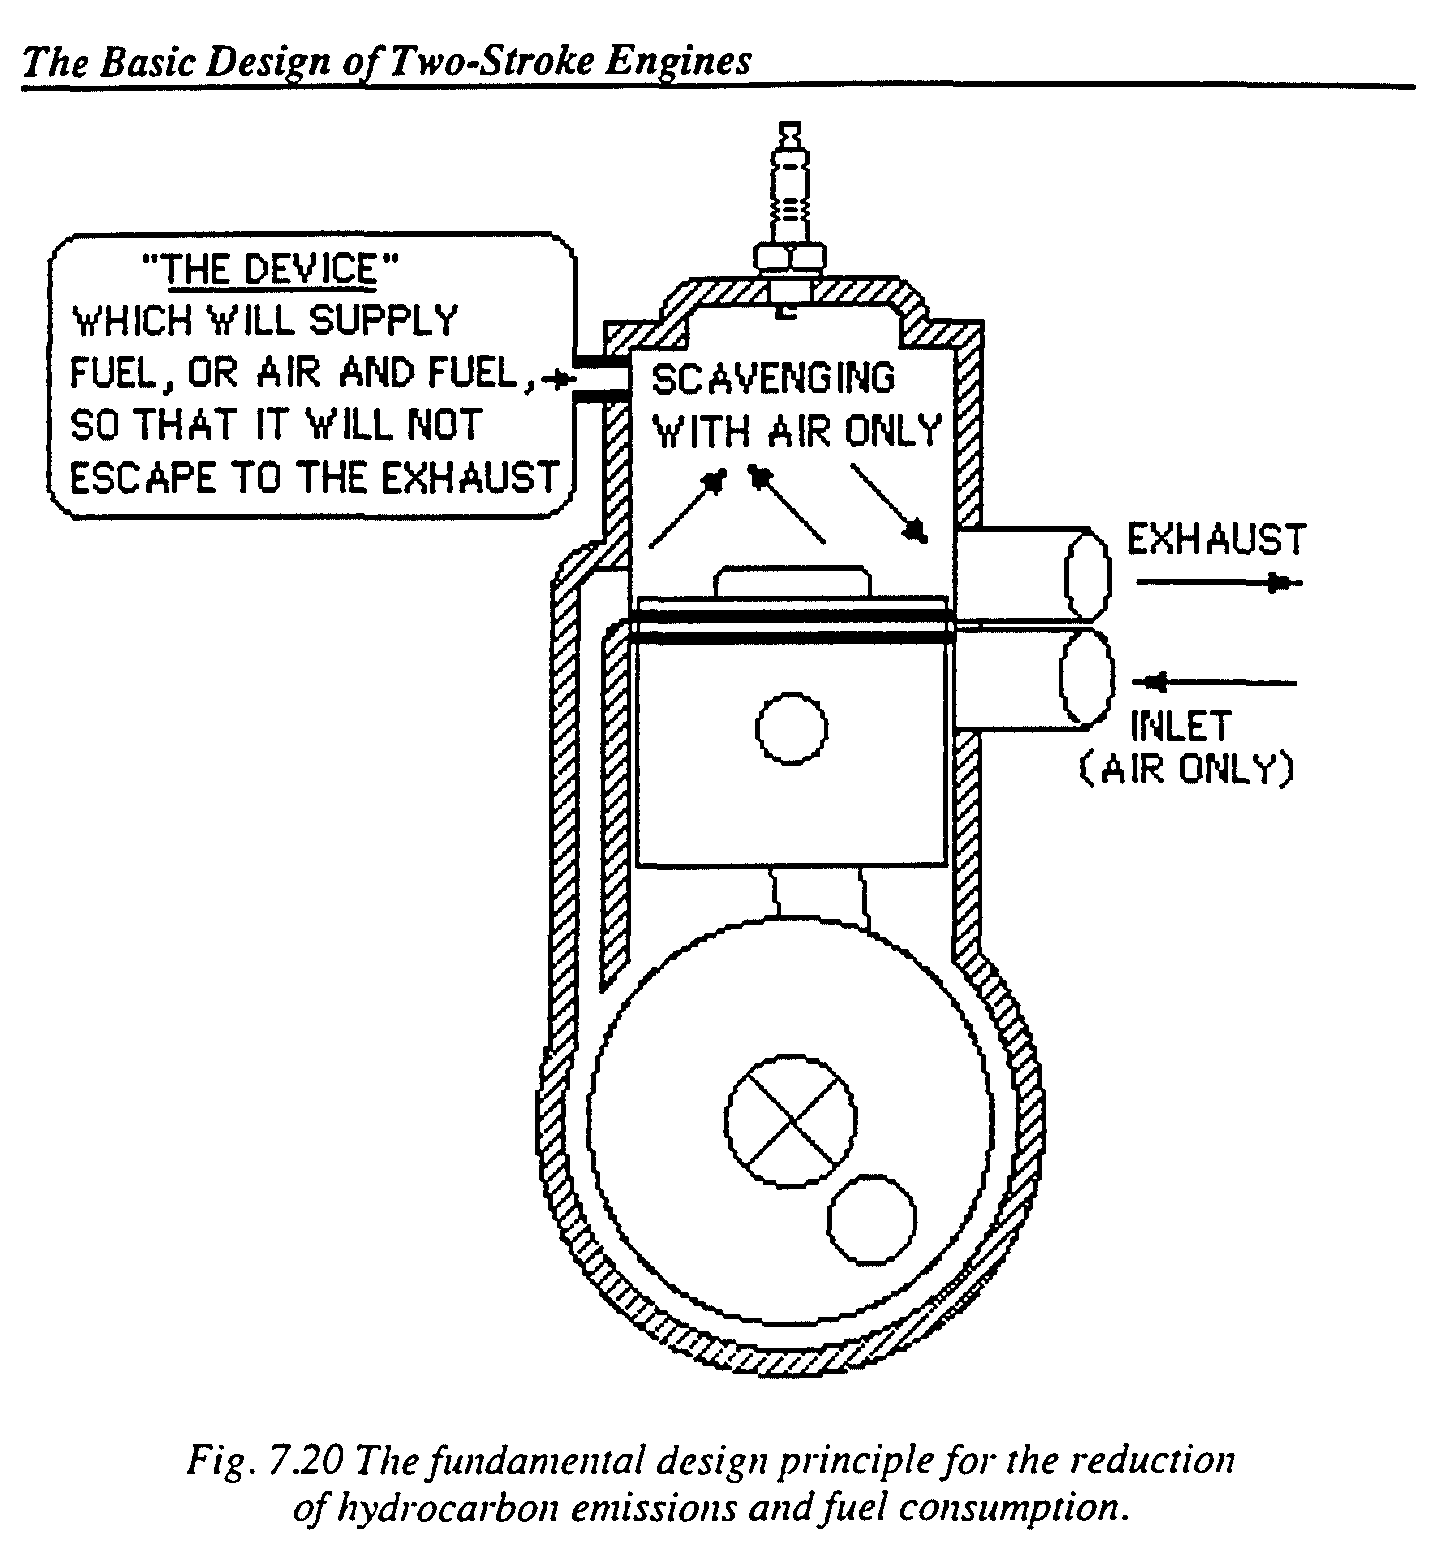 wo1994023191a1 two cycle engine with reduced hydrocarbon emissions Mercury Engine Diagram figure imgf000080 0001